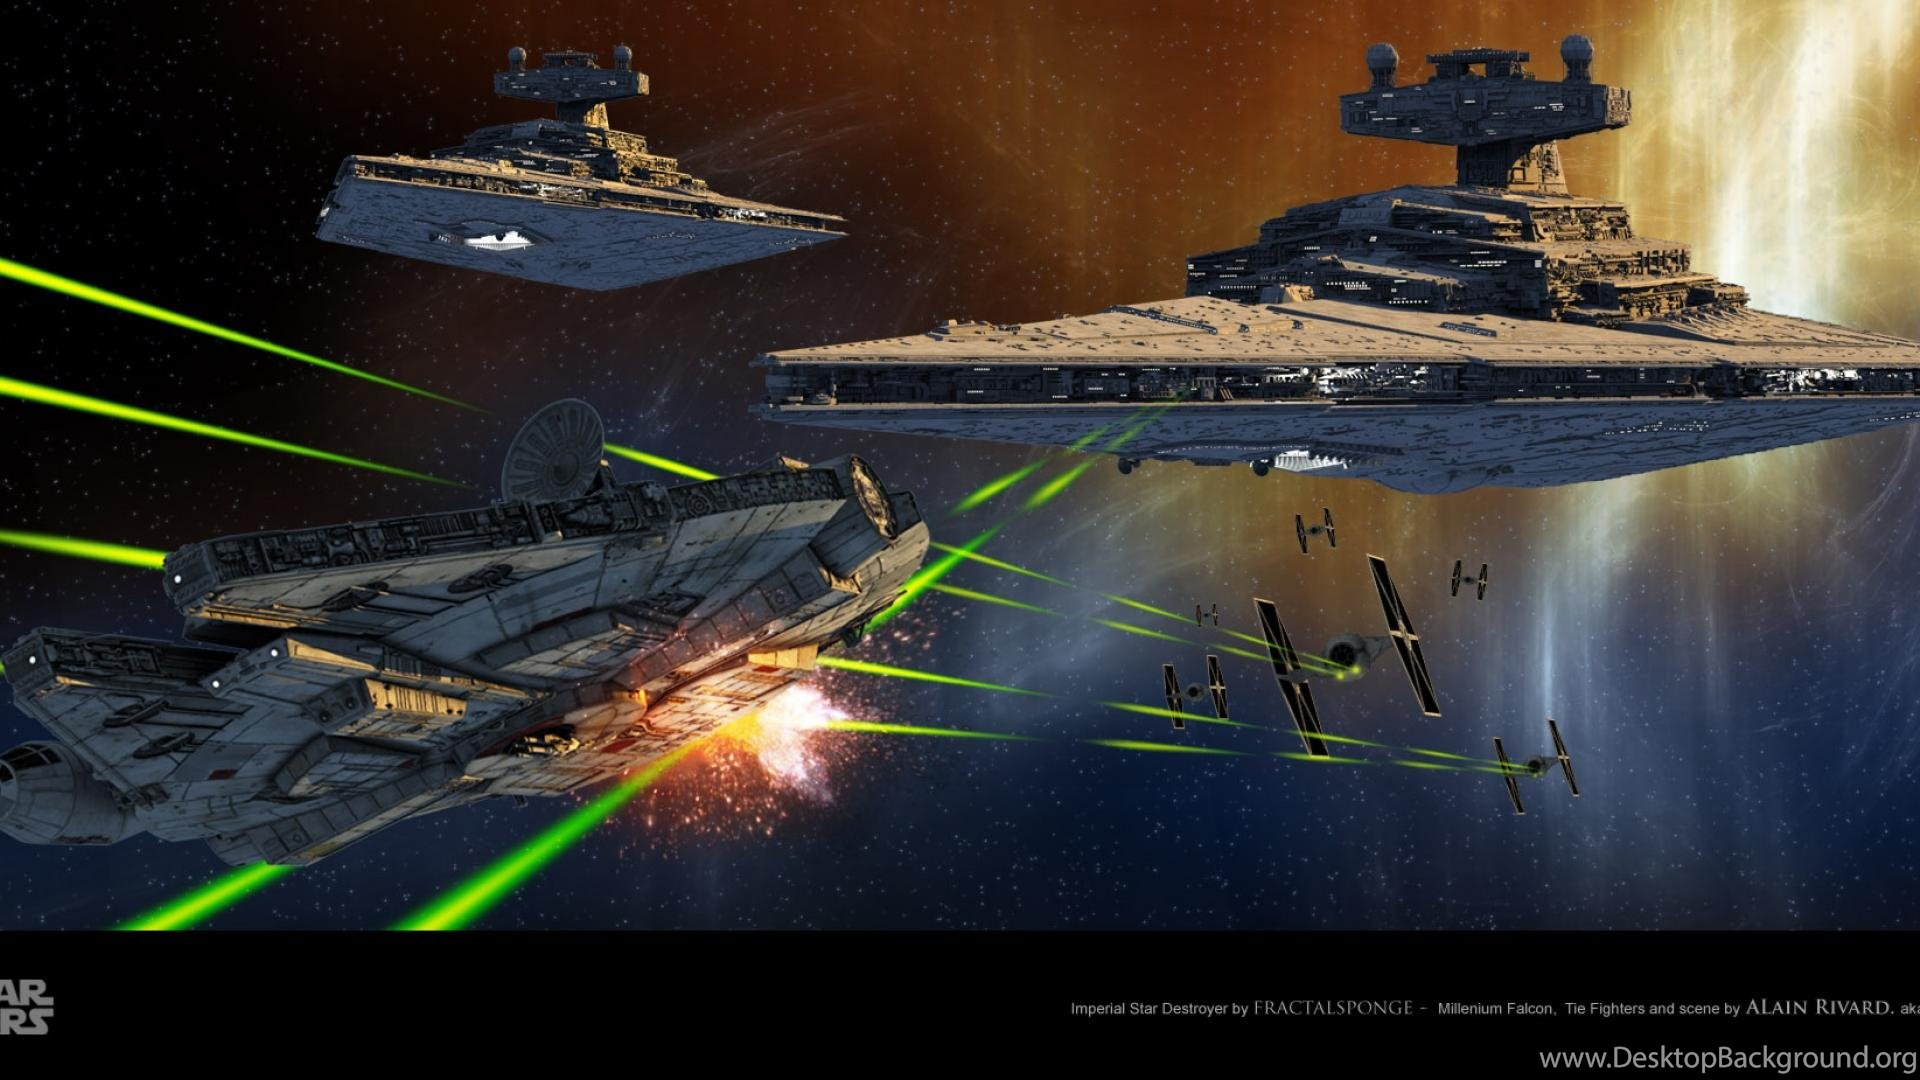 Millennium Falcon Star Destroyer Star Wars Wallpapers Desktop Background